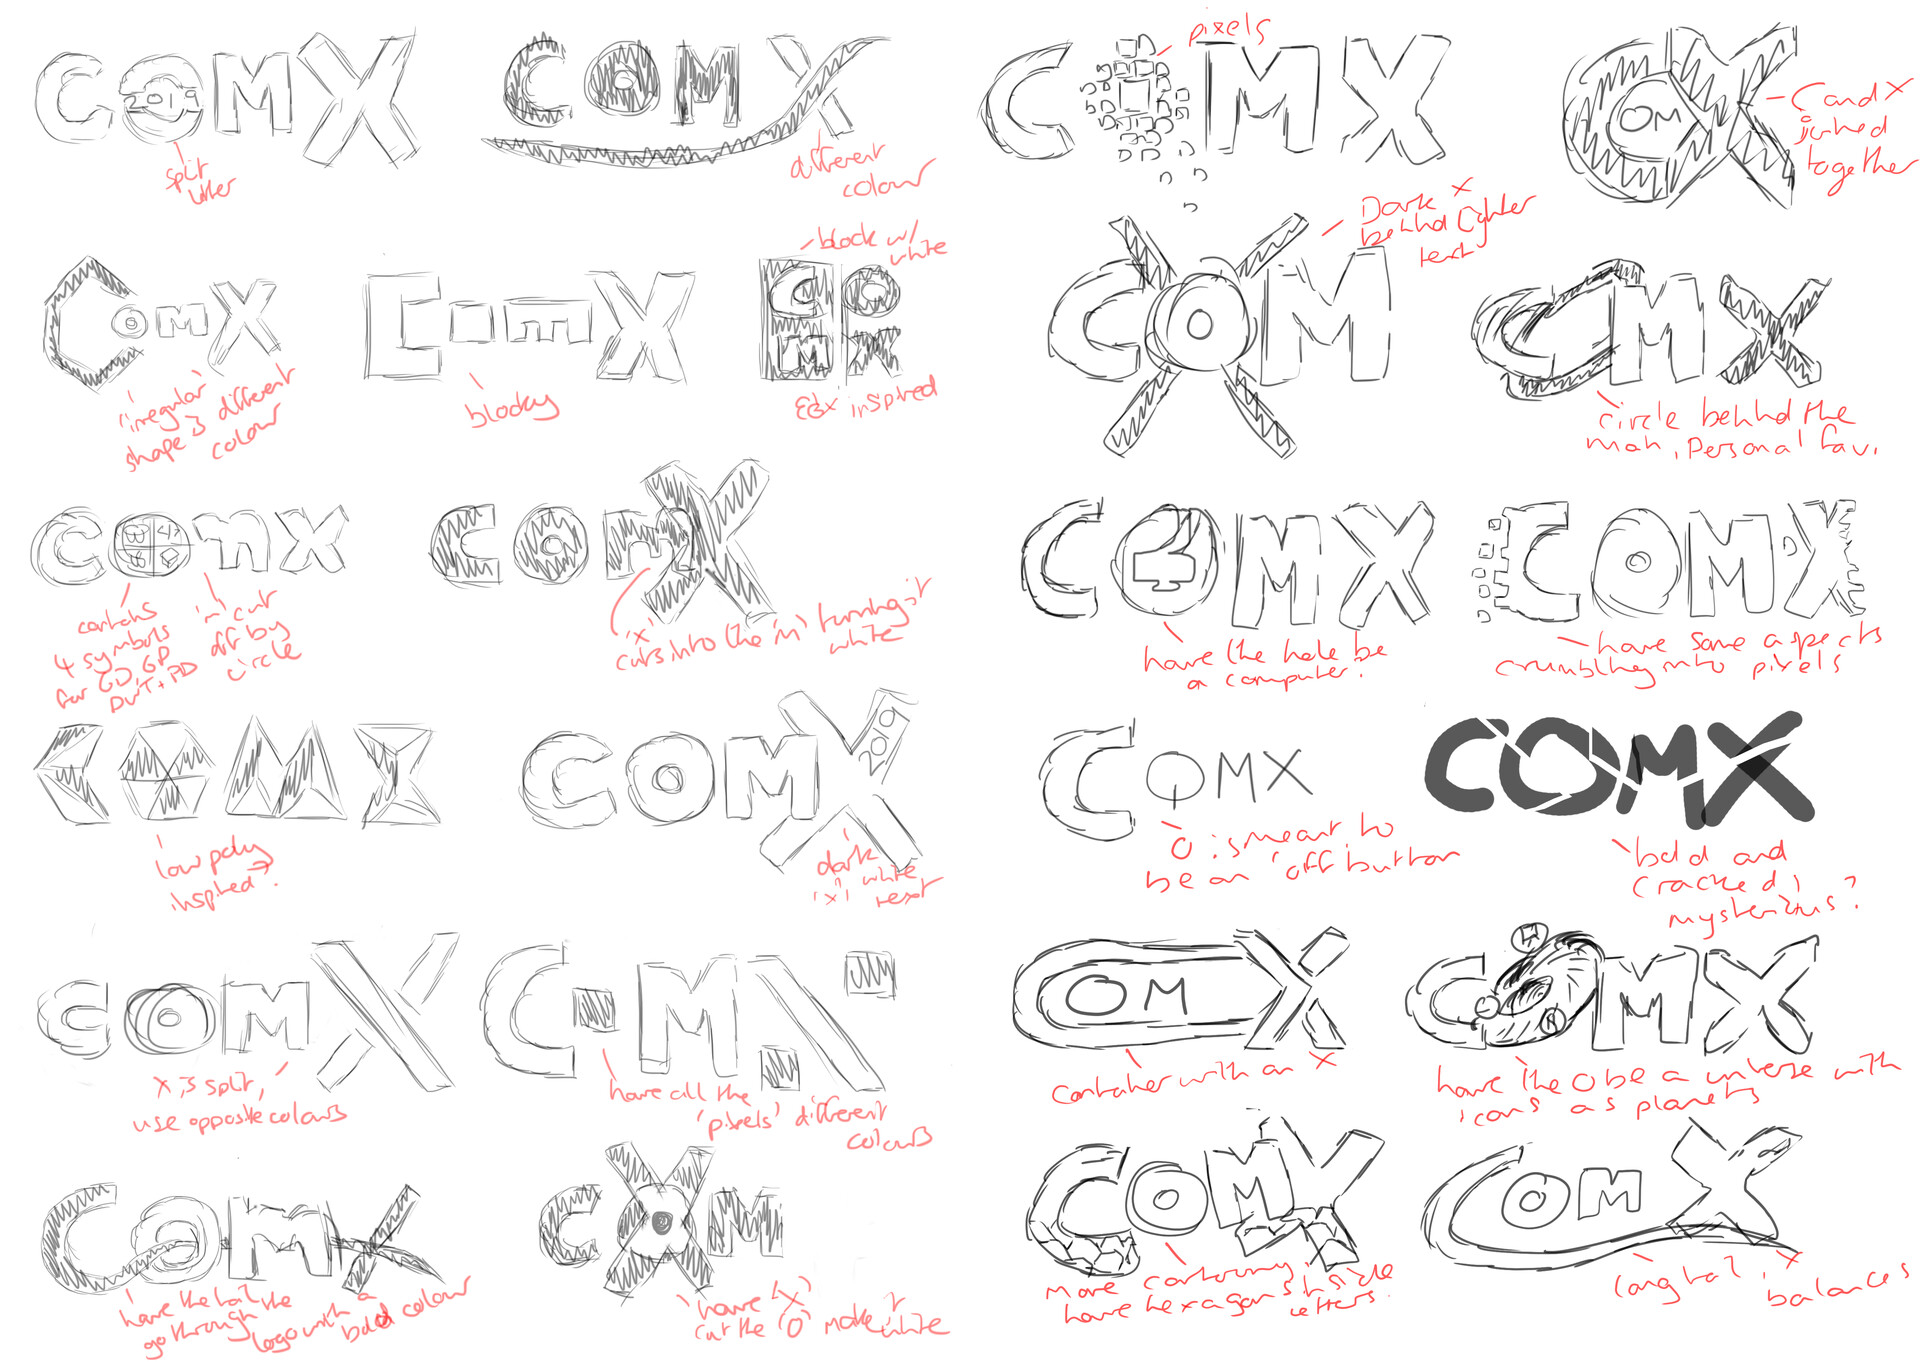 Looking into other exhibition logos and the past COMX logos, I sketched out a bunch of different designs for the client and got them to pick their favourites.